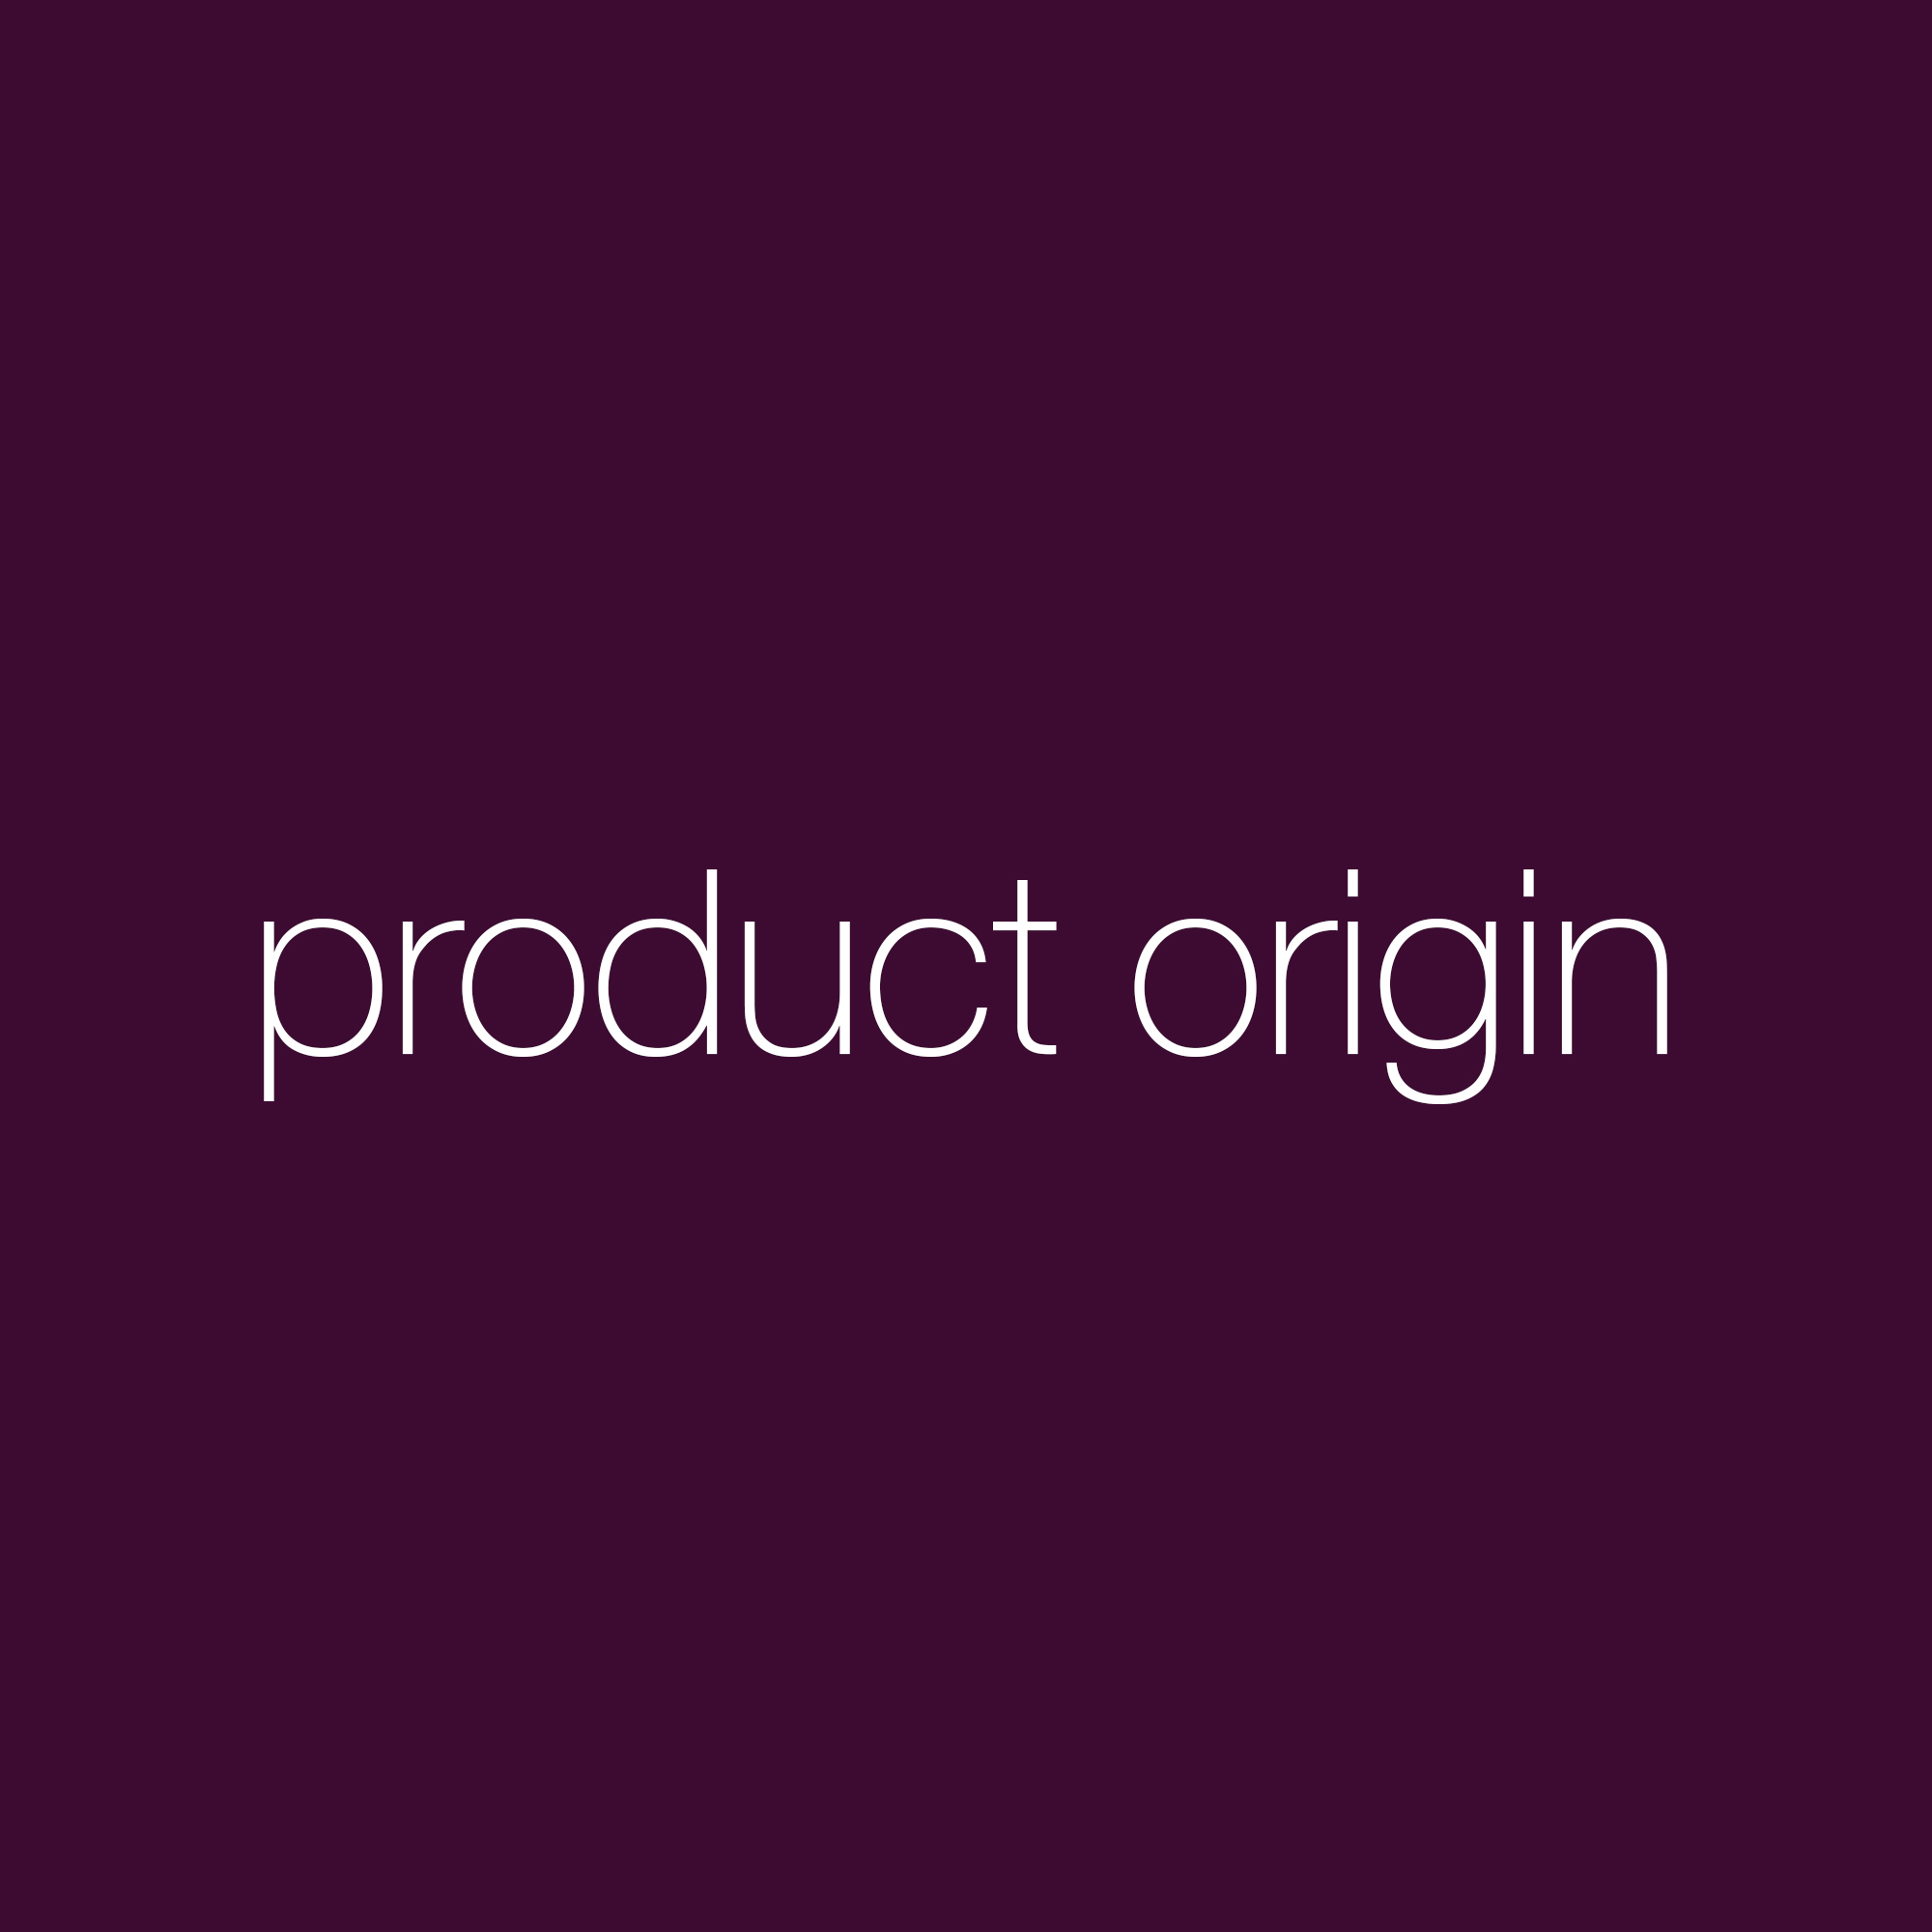 sidebar-icon-attribute-product-origin